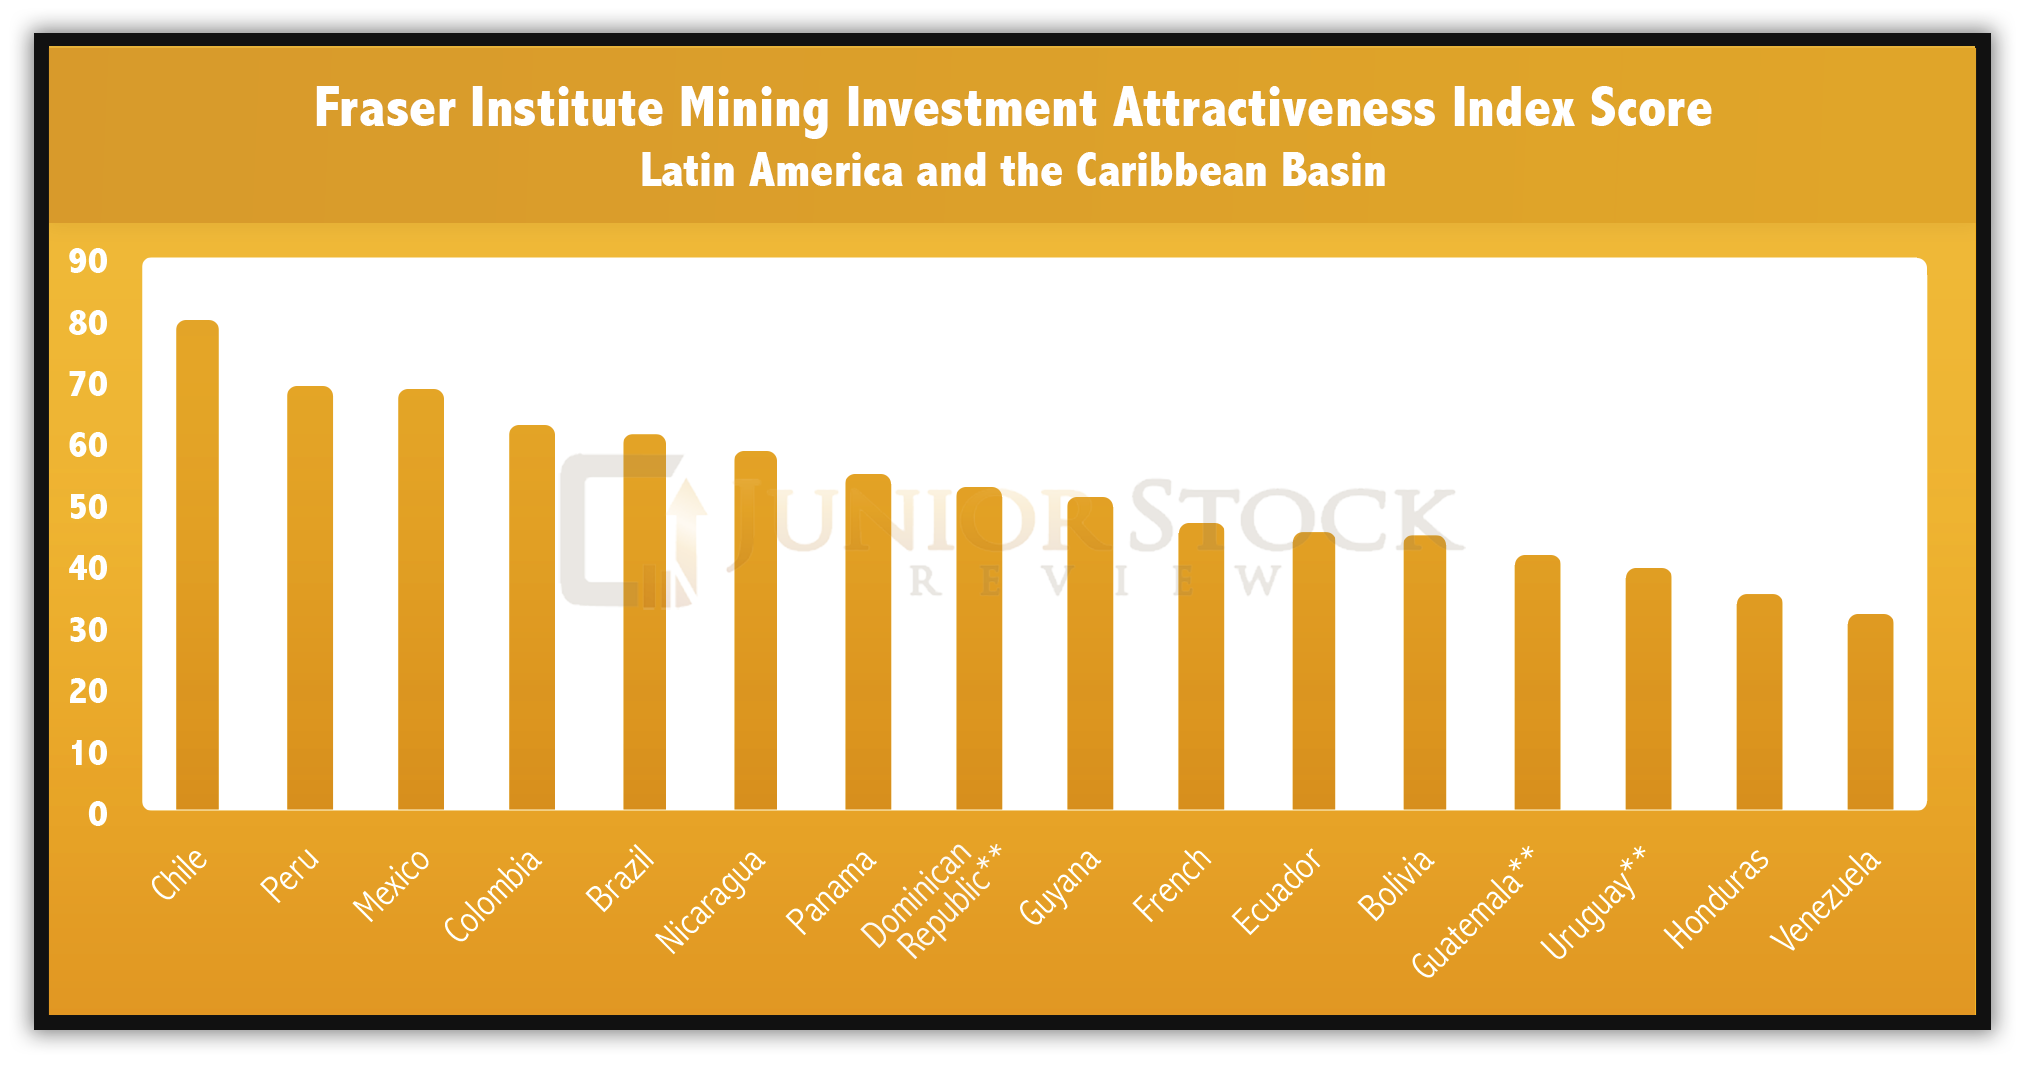 Fraser Institute Mining Investment Attractiveness